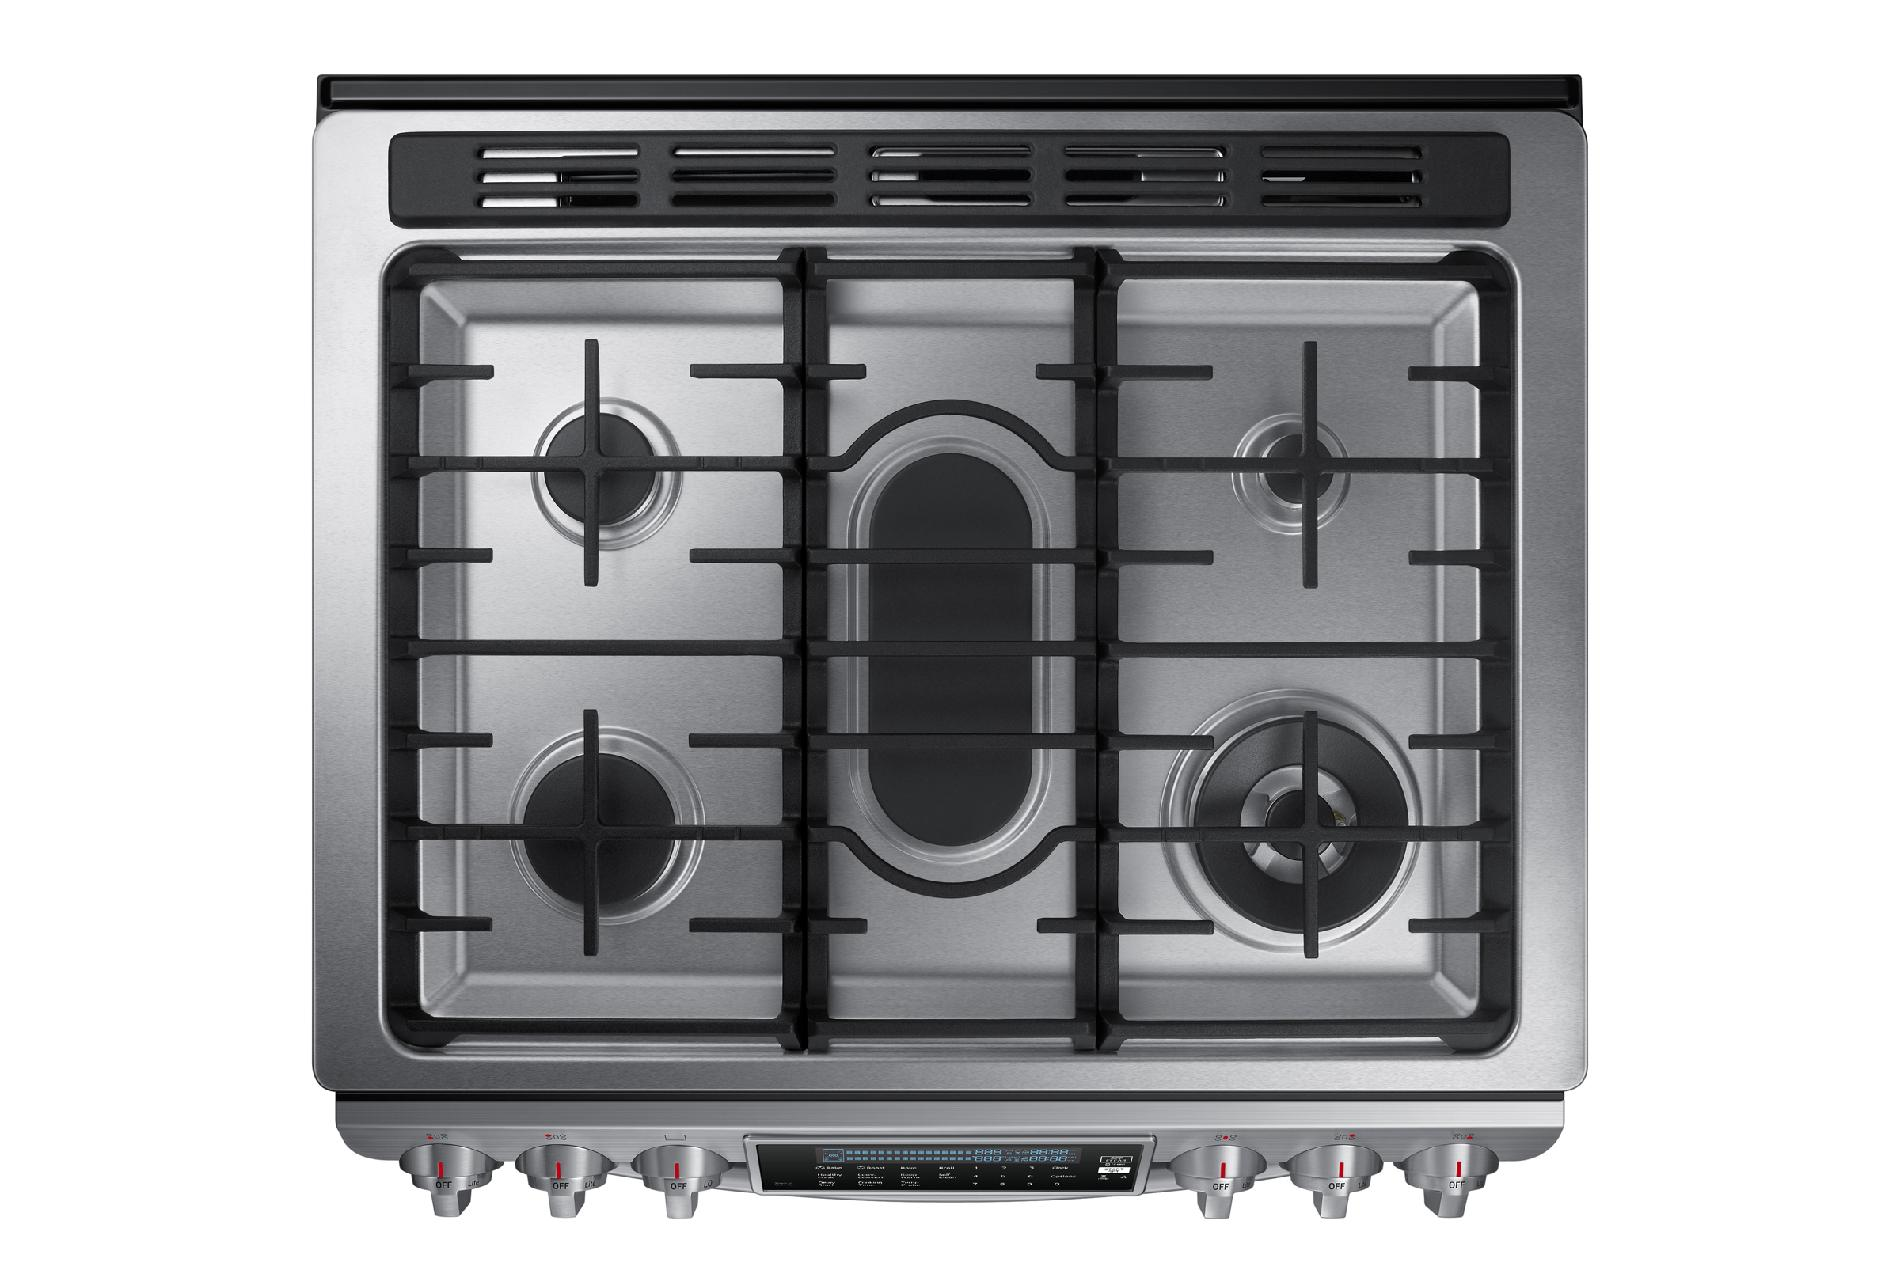 Samsung NX58H9950WS 5.8 cu. ft. Slide-In Gas Chef Collection Range w/ True Convection - Stainless Steel